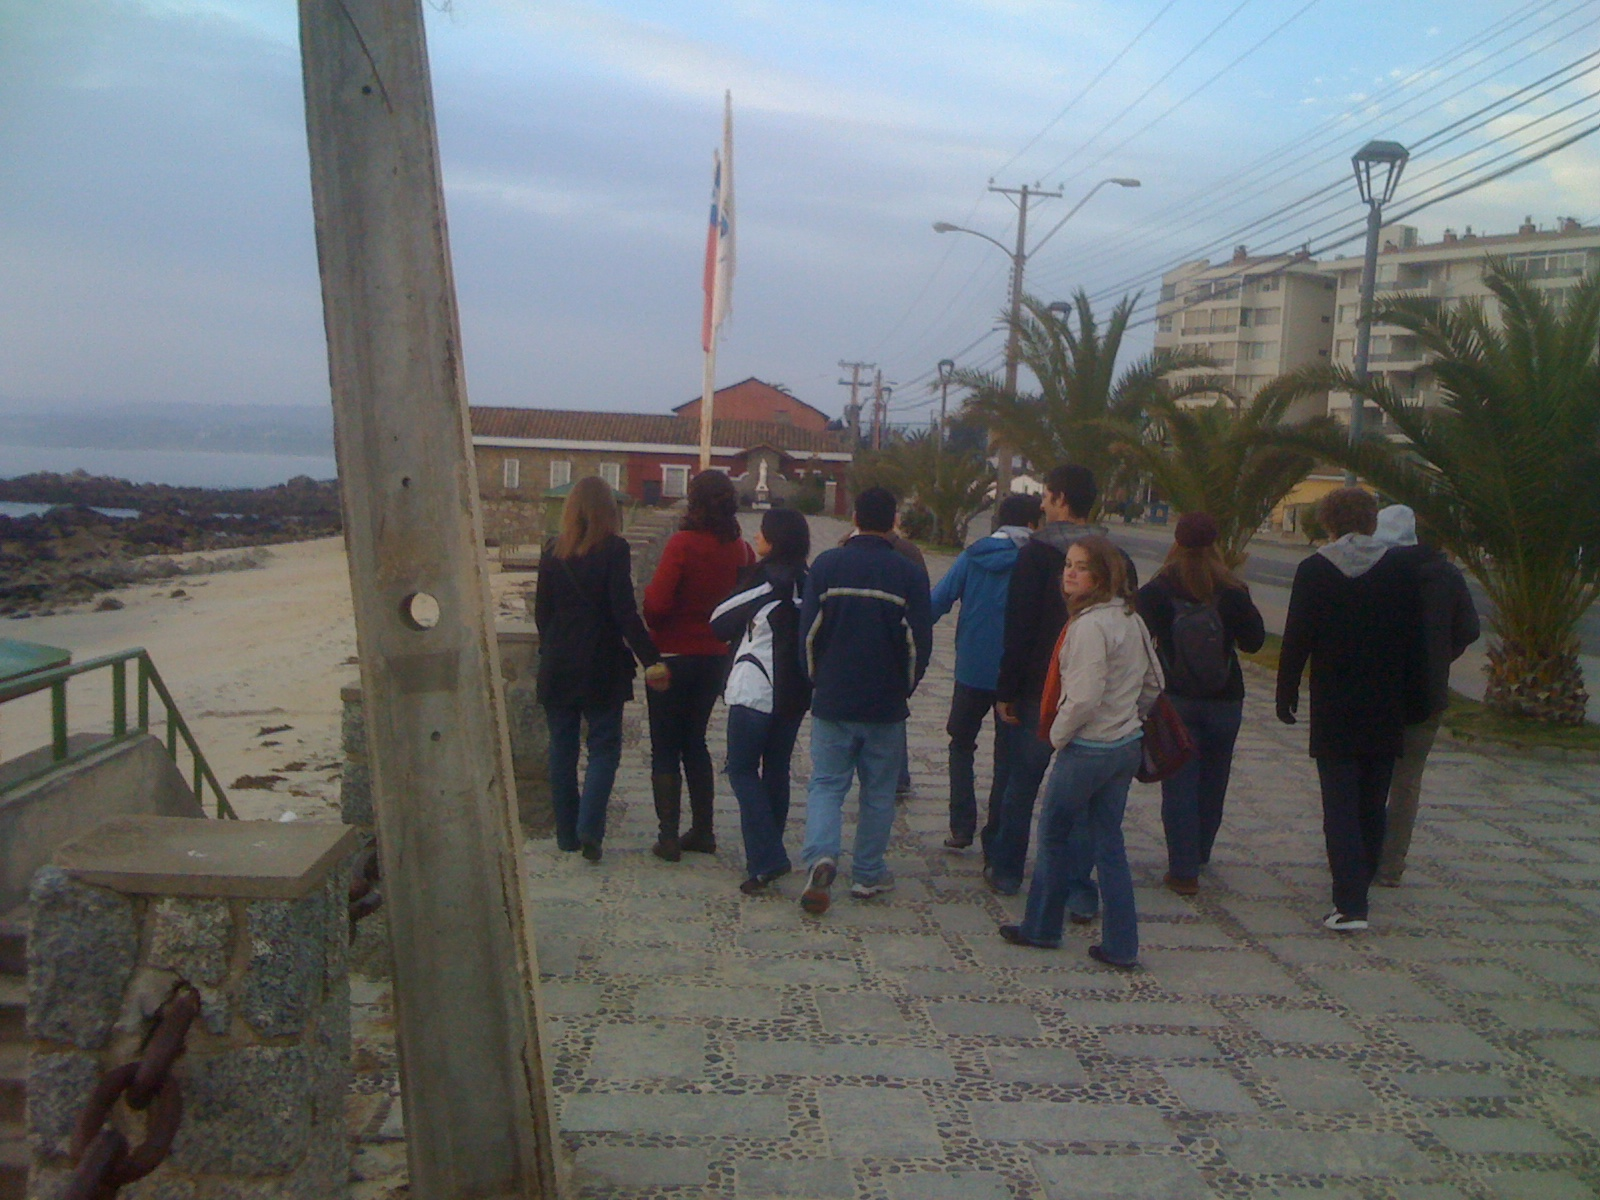 The group walking through Algarrobo.